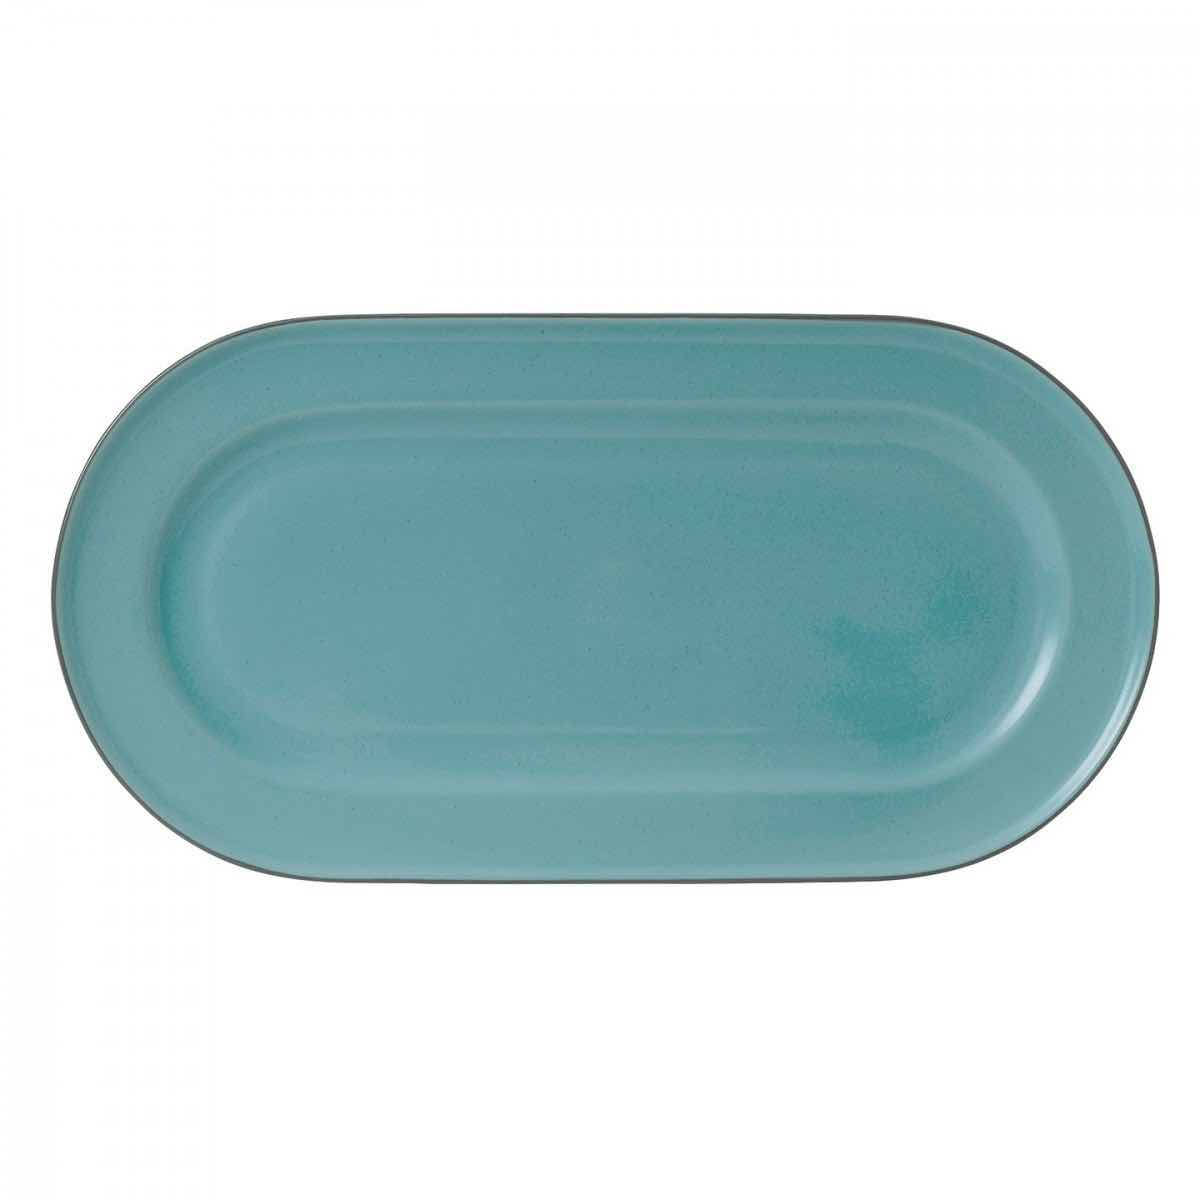 Gordon Ramsay Union Street Café Serving Platter | Blue